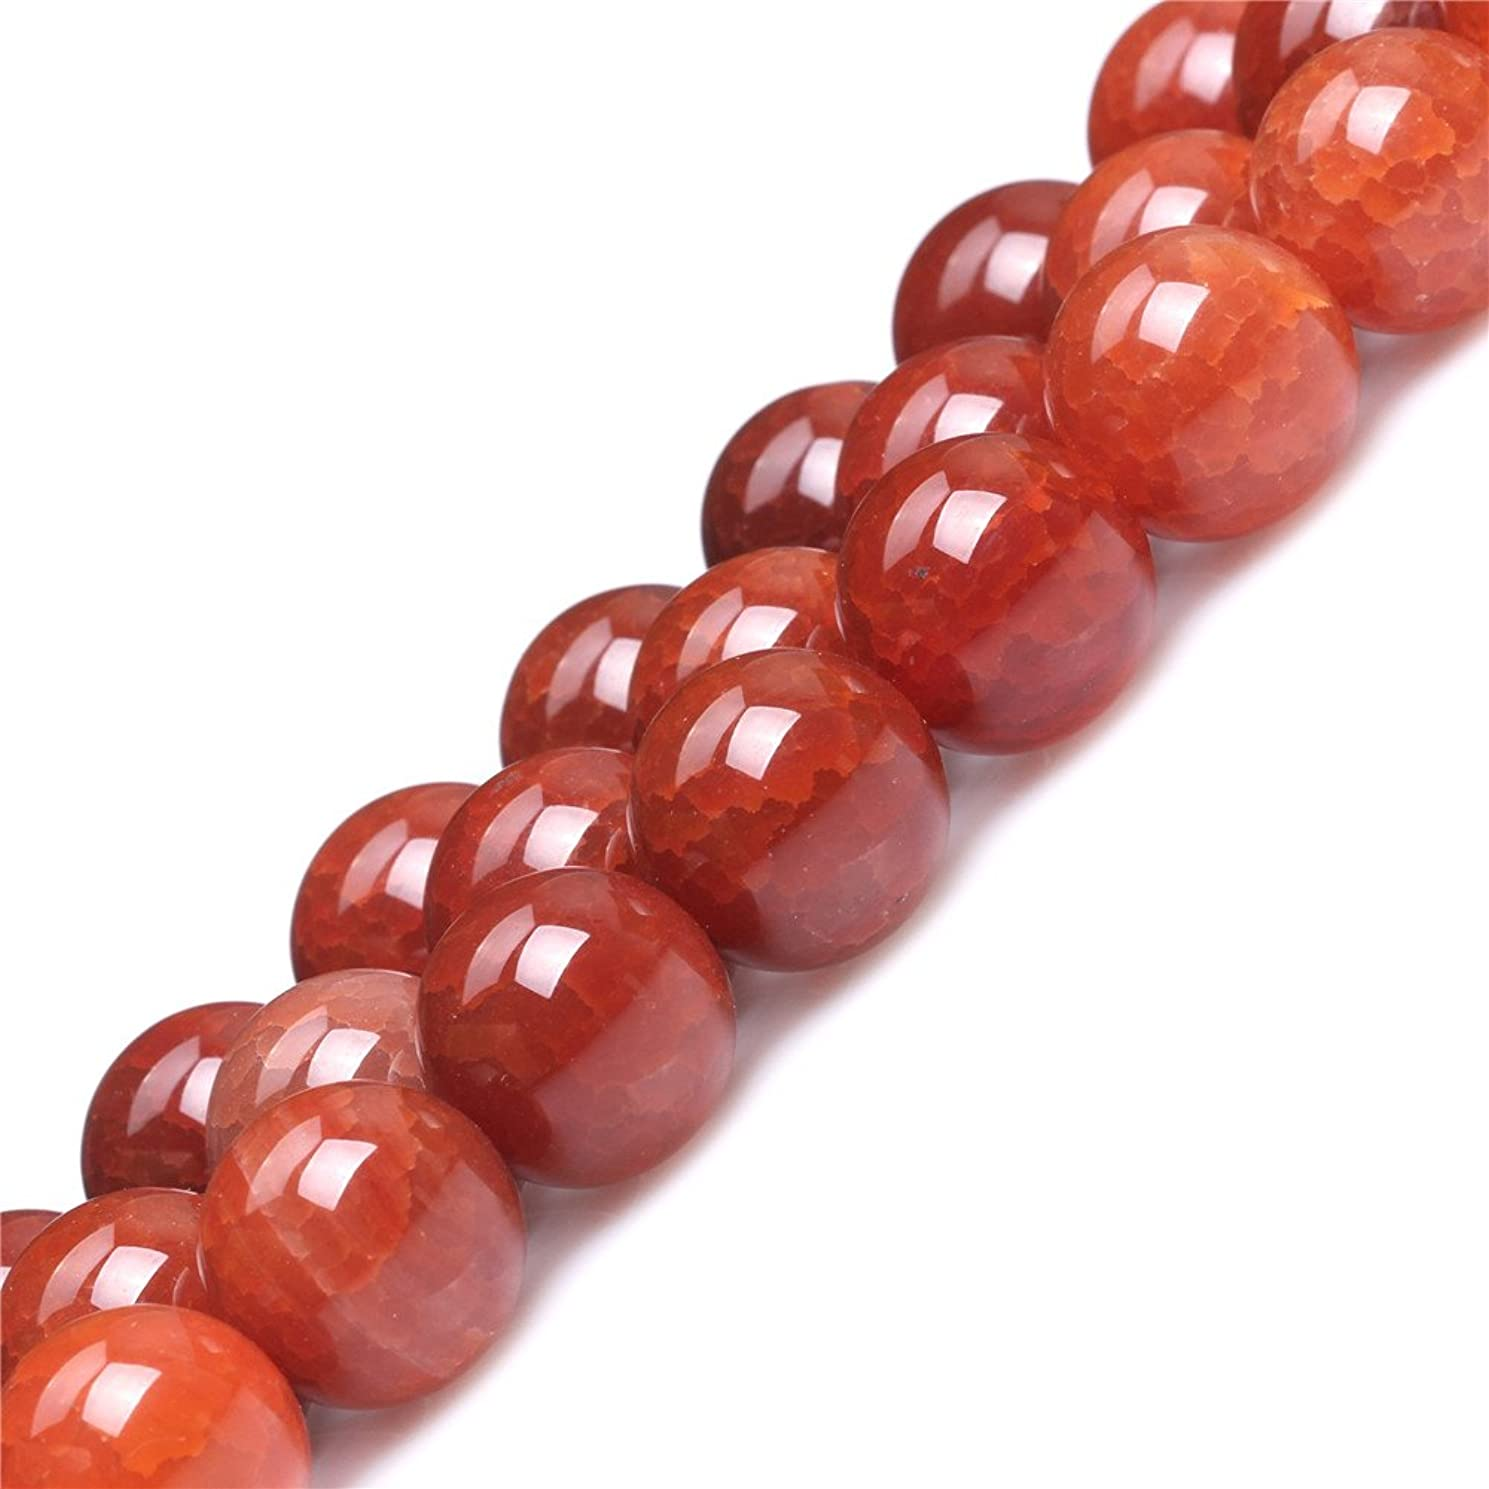 Red Crackle Agate Beads for Jewelry Making Natural Semi Precious Gemstone 14mm Round Strand 15